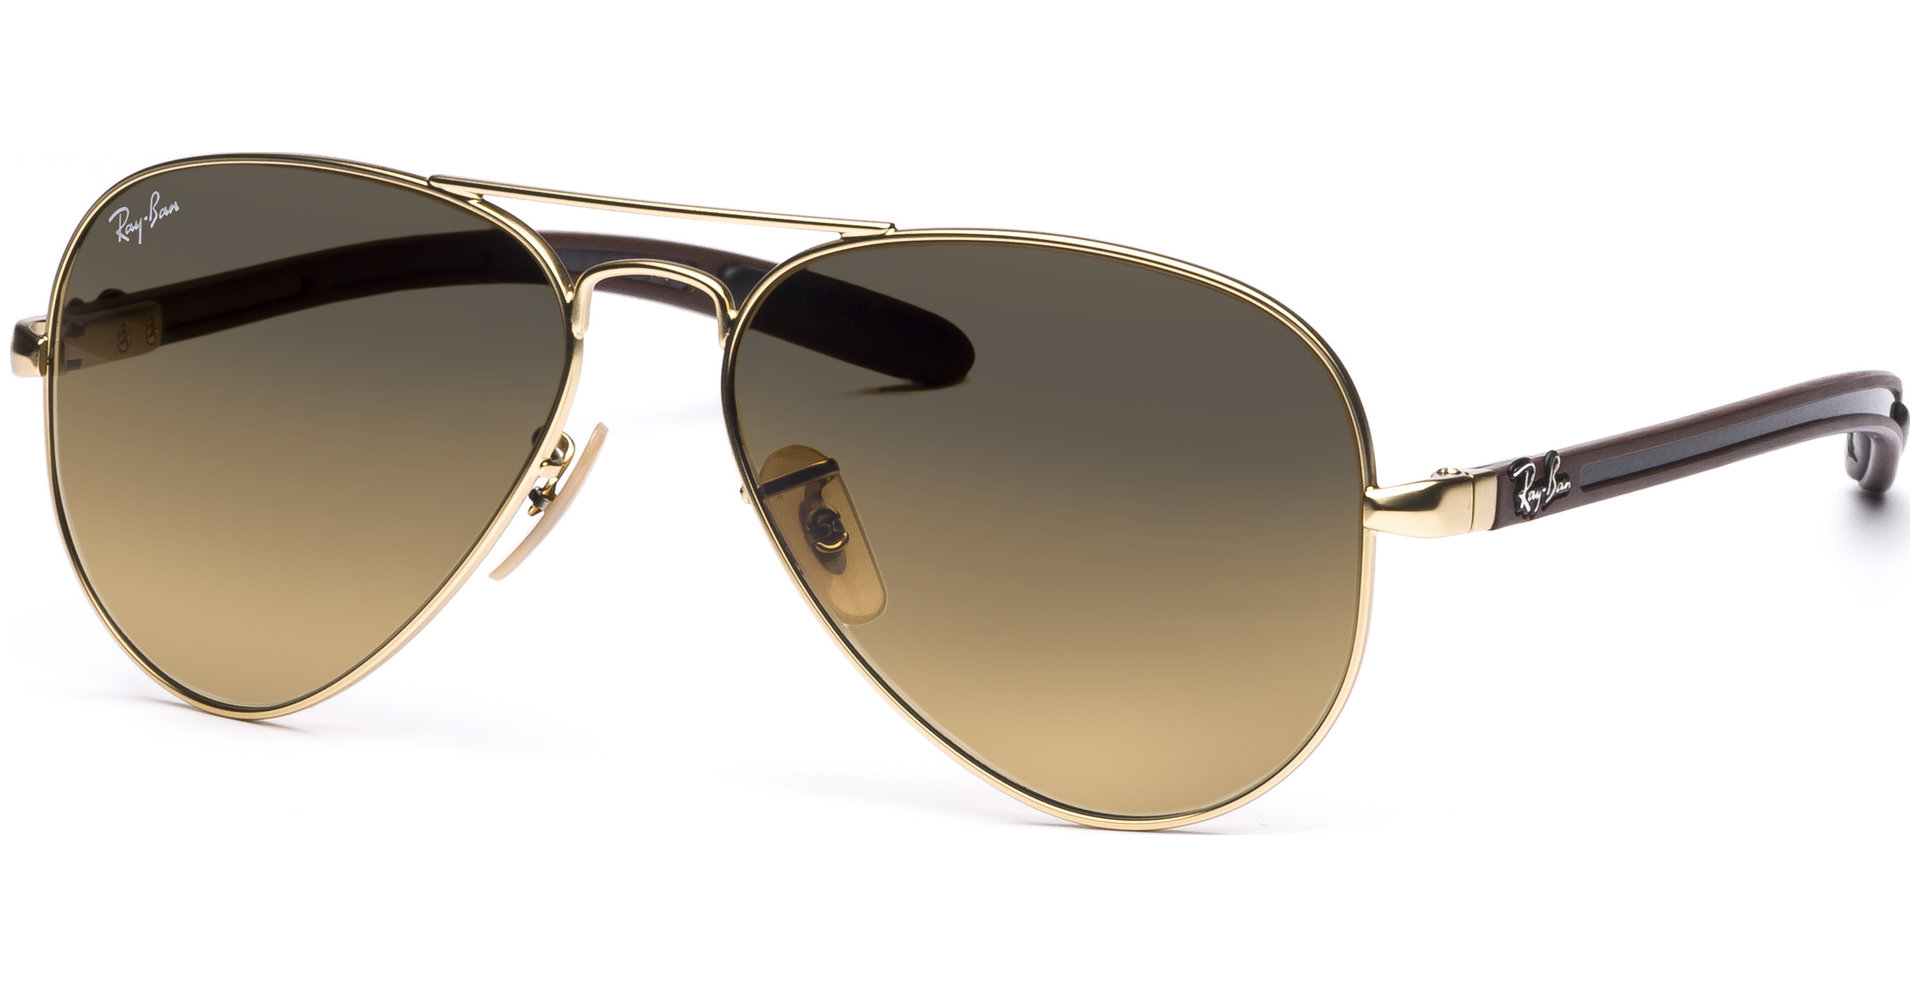 ray ban matte gold aviator  Ray-Ban - Aviator Carbon Fibre RB8307 112/85 5814 Matte Gold/Brown ...